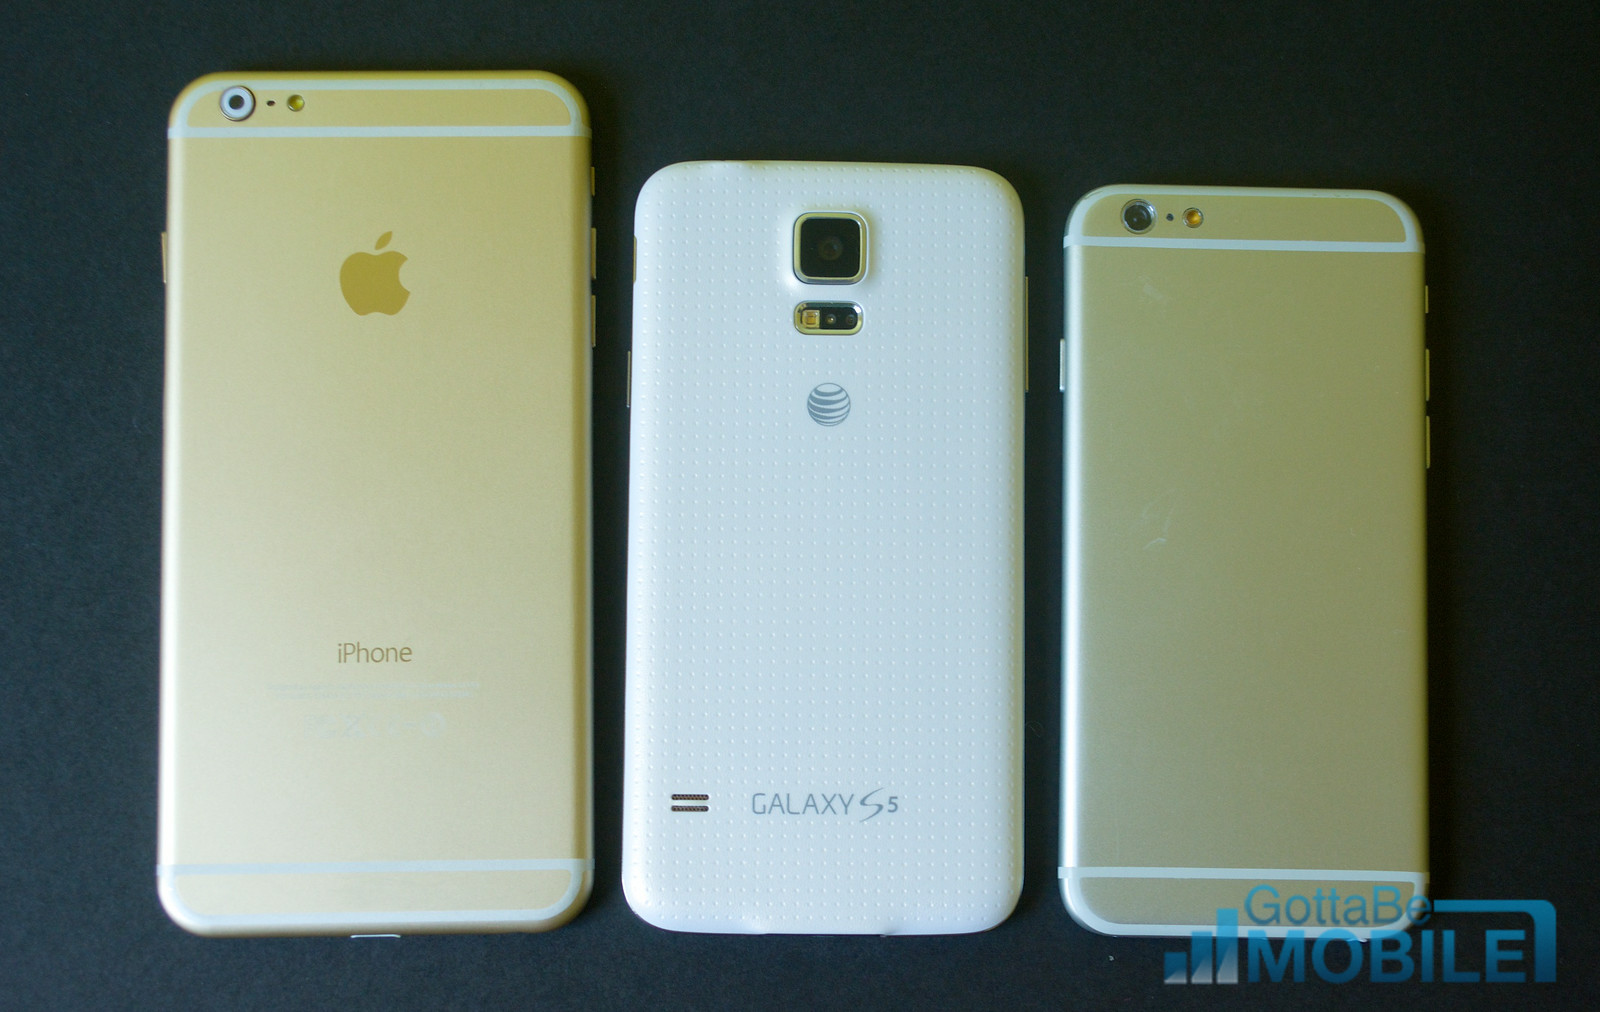 Galaxy s5 Dimensions vs Iphone 6 Iphone-6-vs-galaxy-s5-size